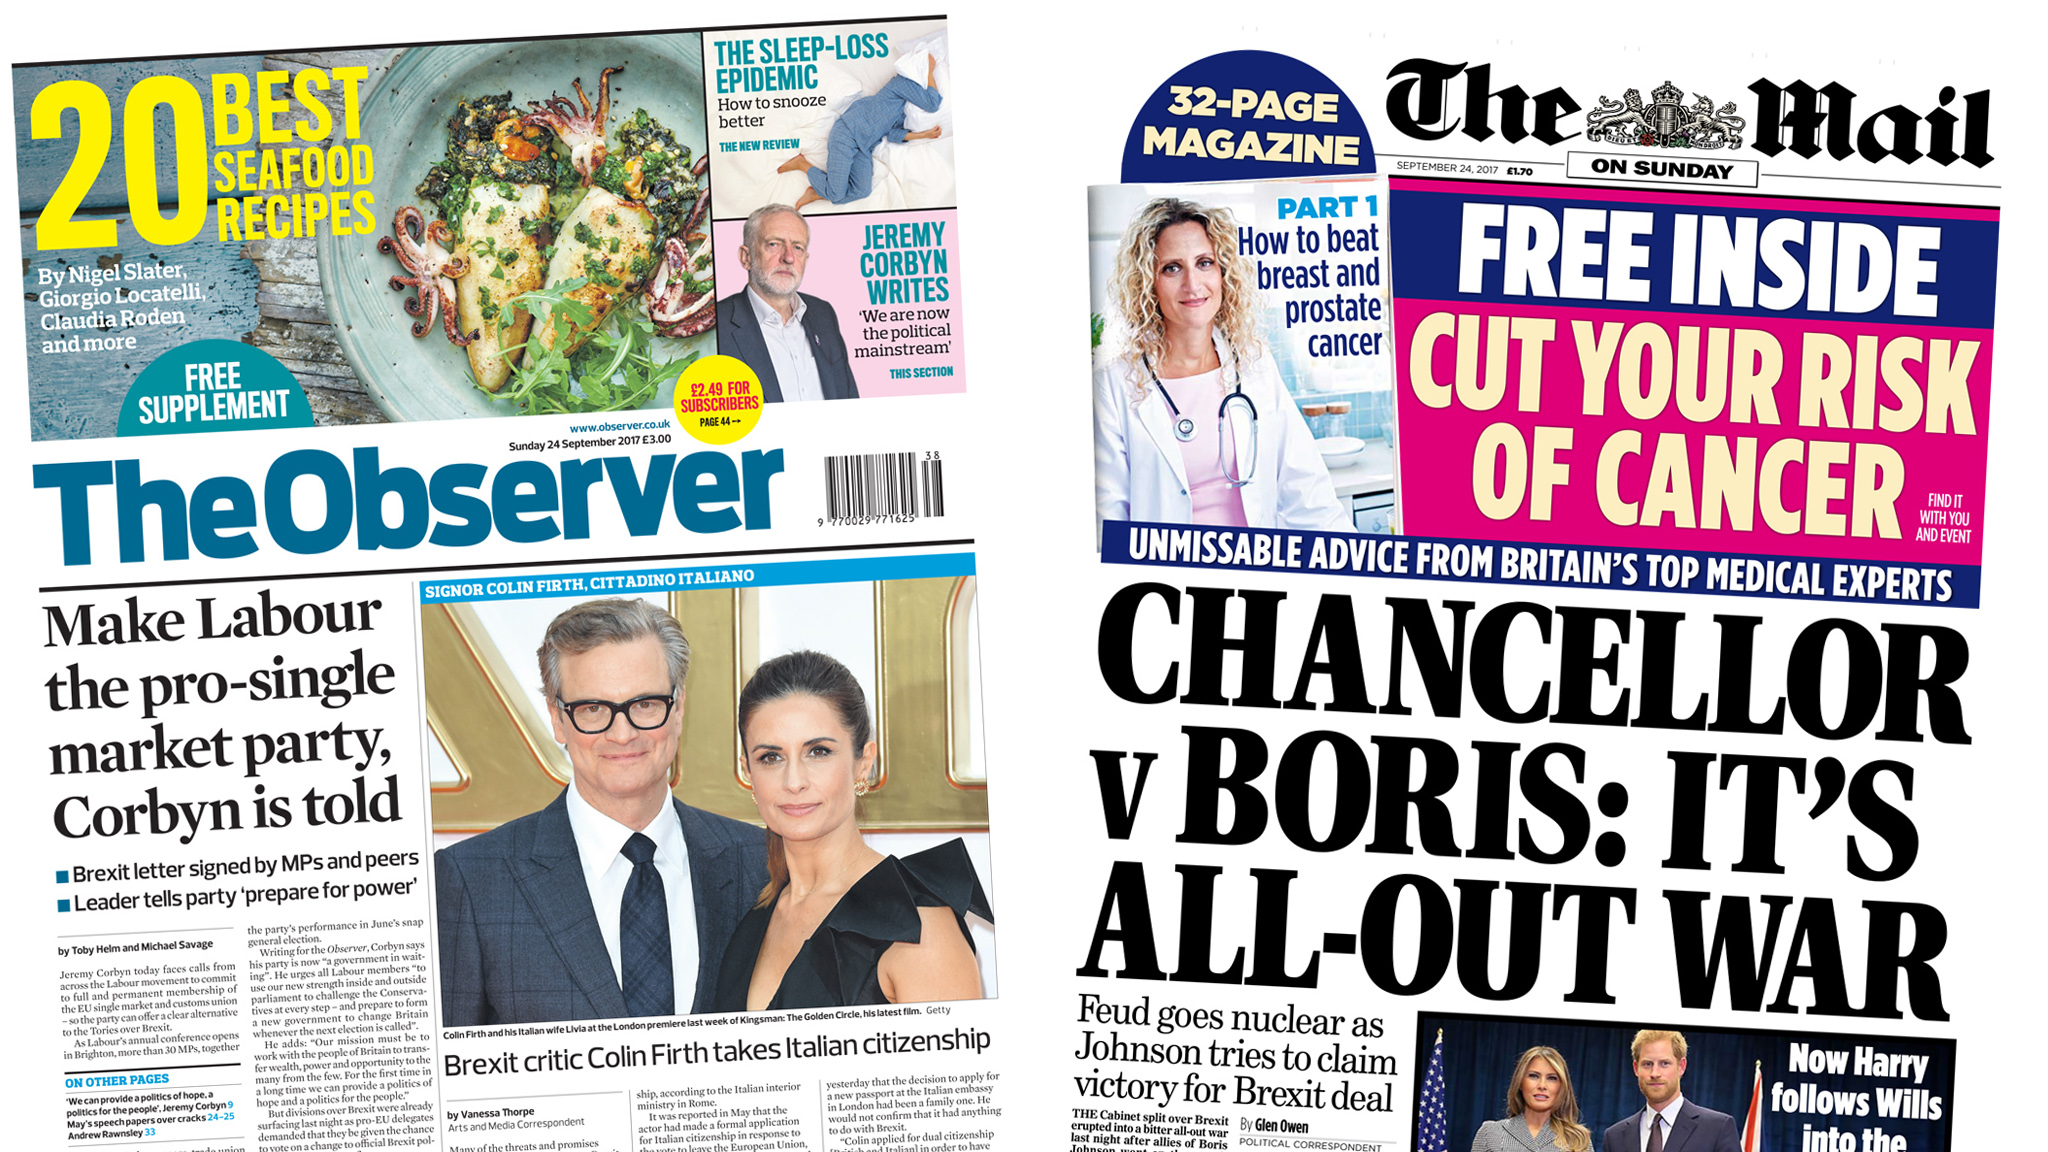 The Papers: Cabinet 'all-out war' over Brexit